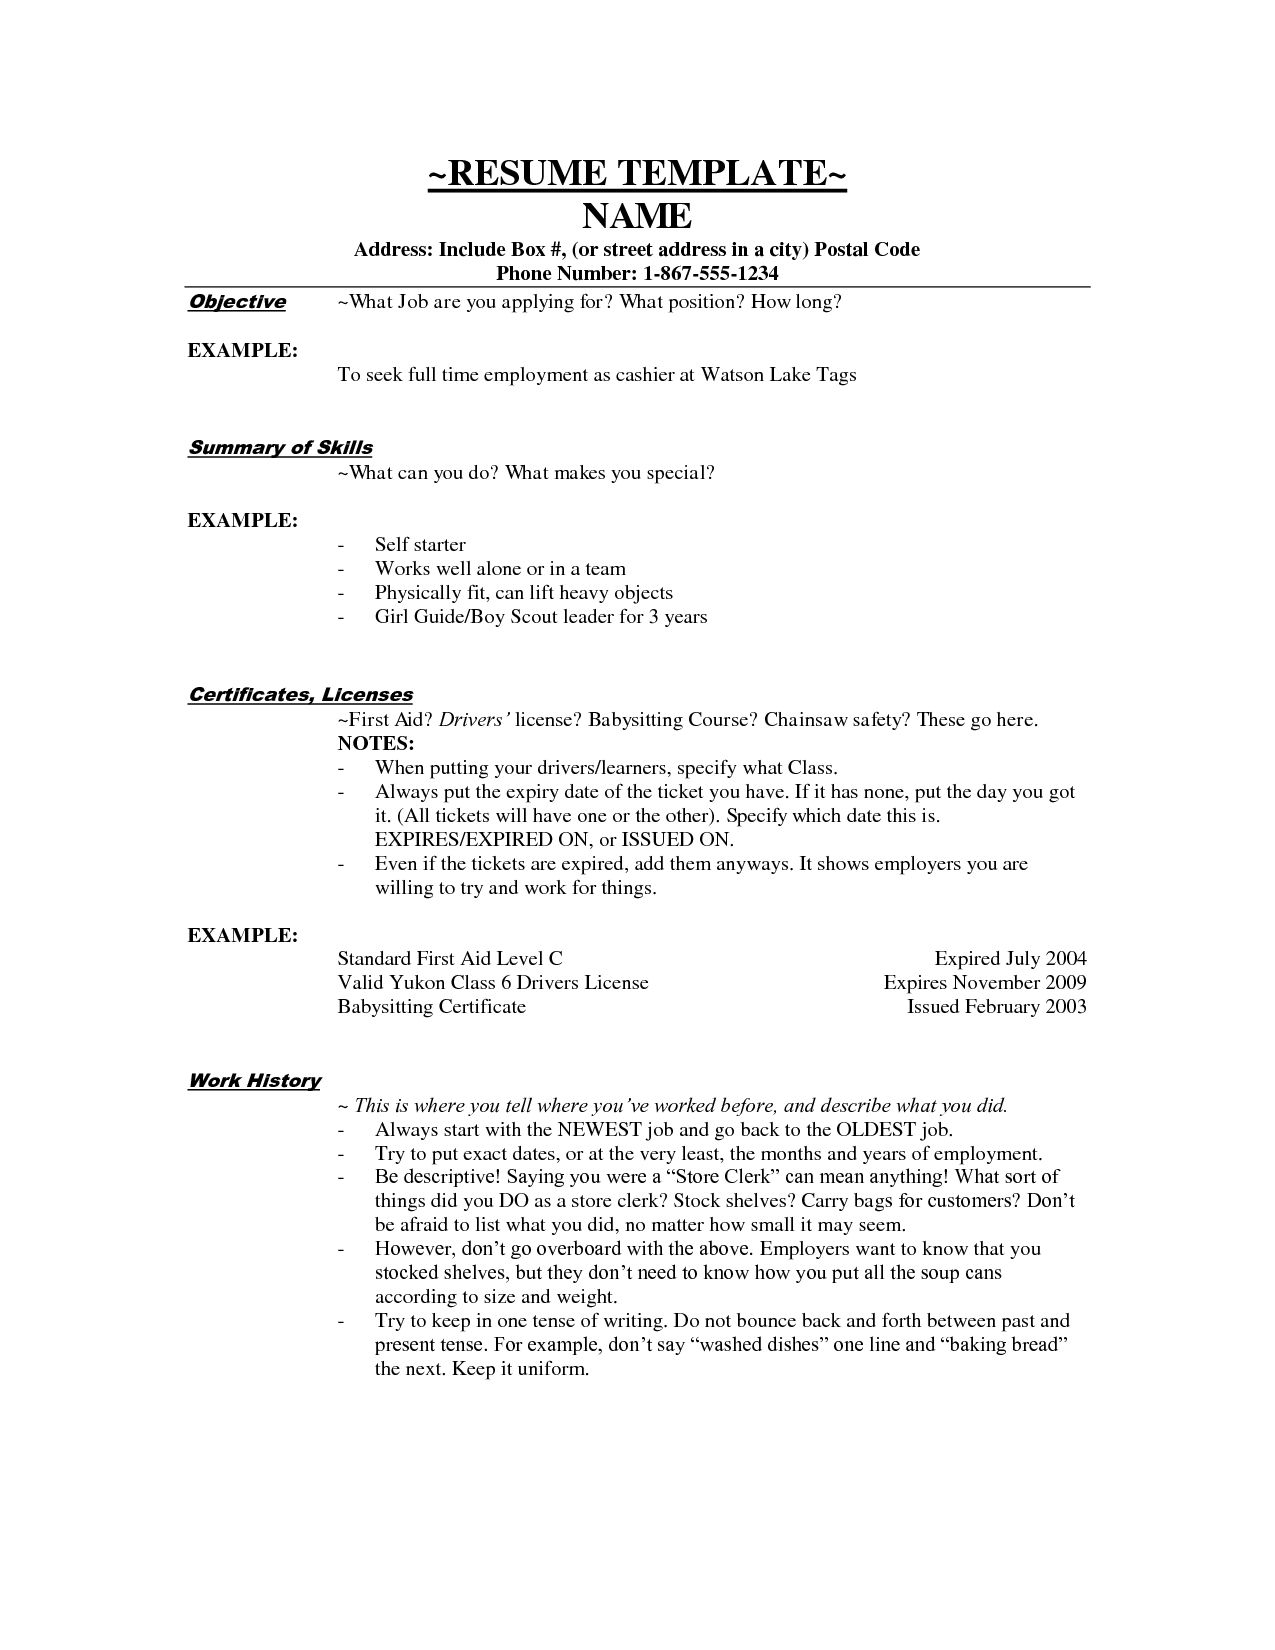 Examples Resumes Resume Career Summary Professional Samples Other